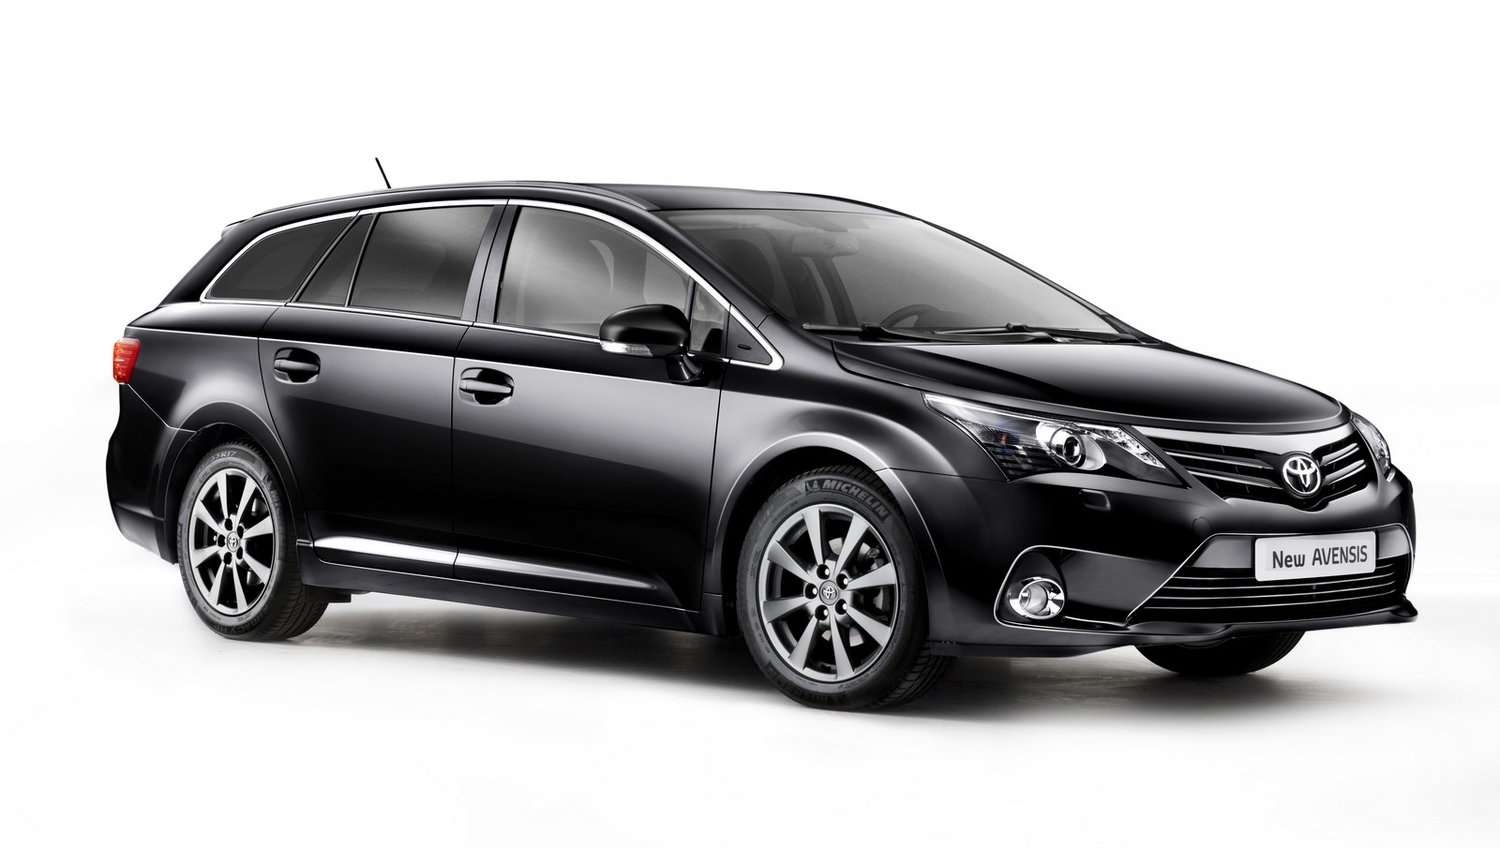 Toyota Avensis Estate - Coming Soon